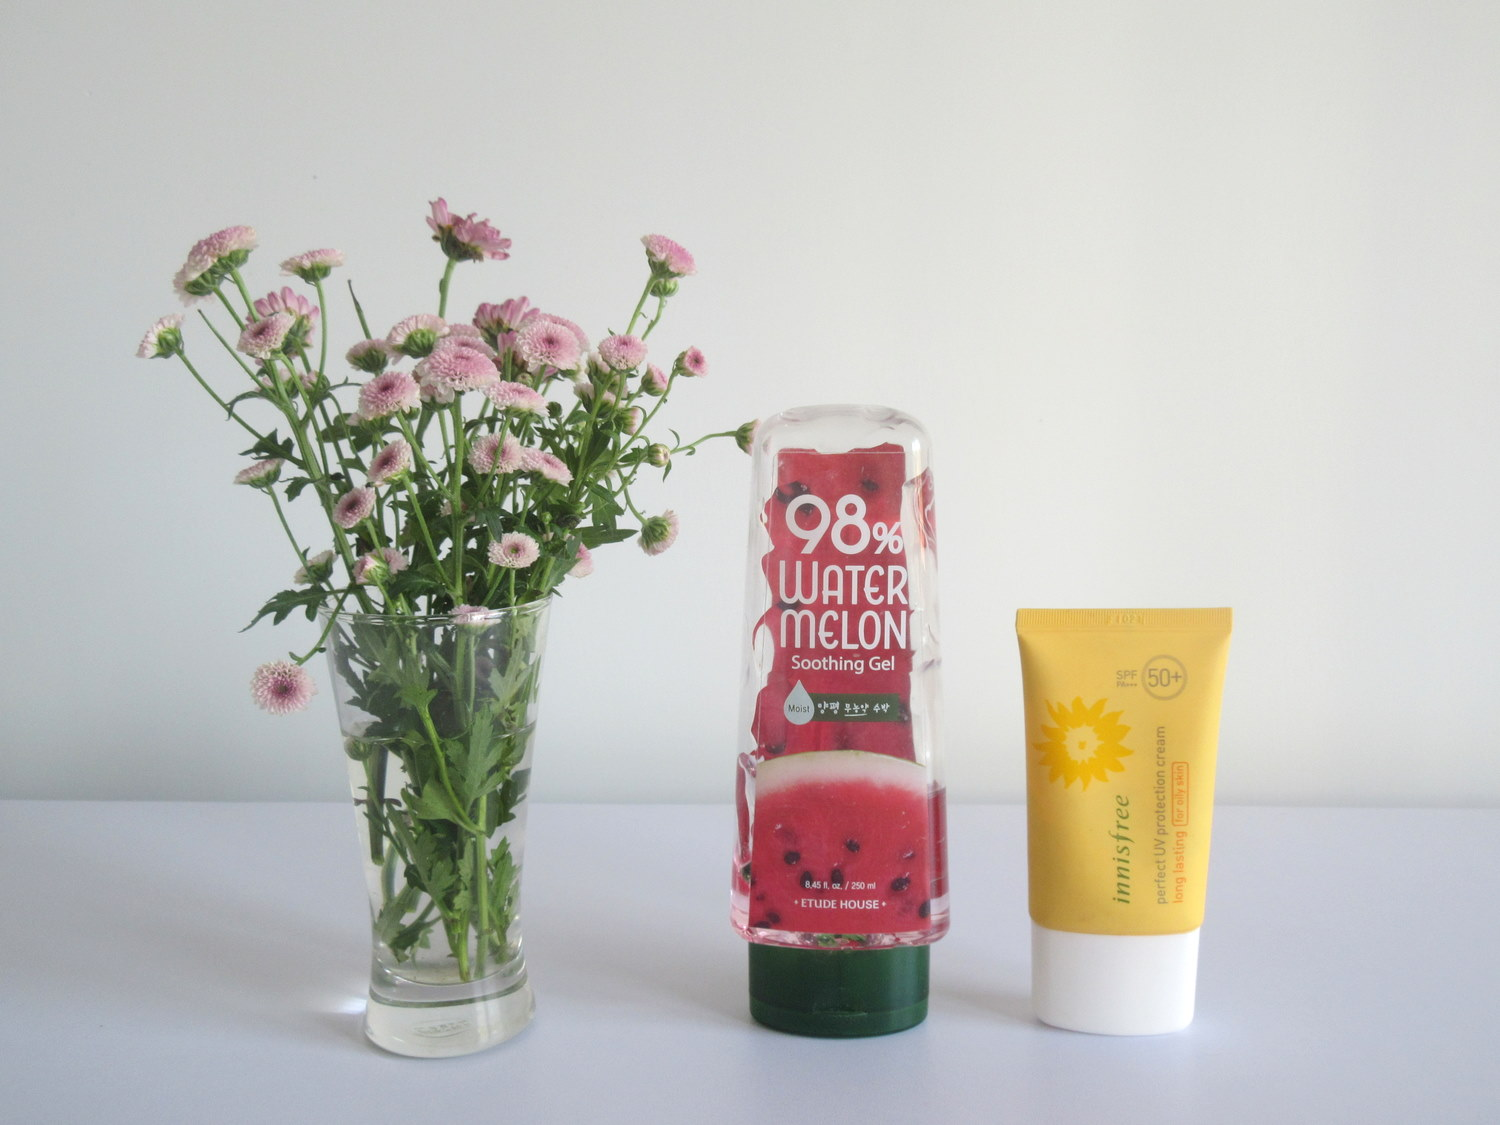 Etude House 98% Watermelon Soothing Gel, Innisfree Perfect UV Protection Cream For Oily Skin